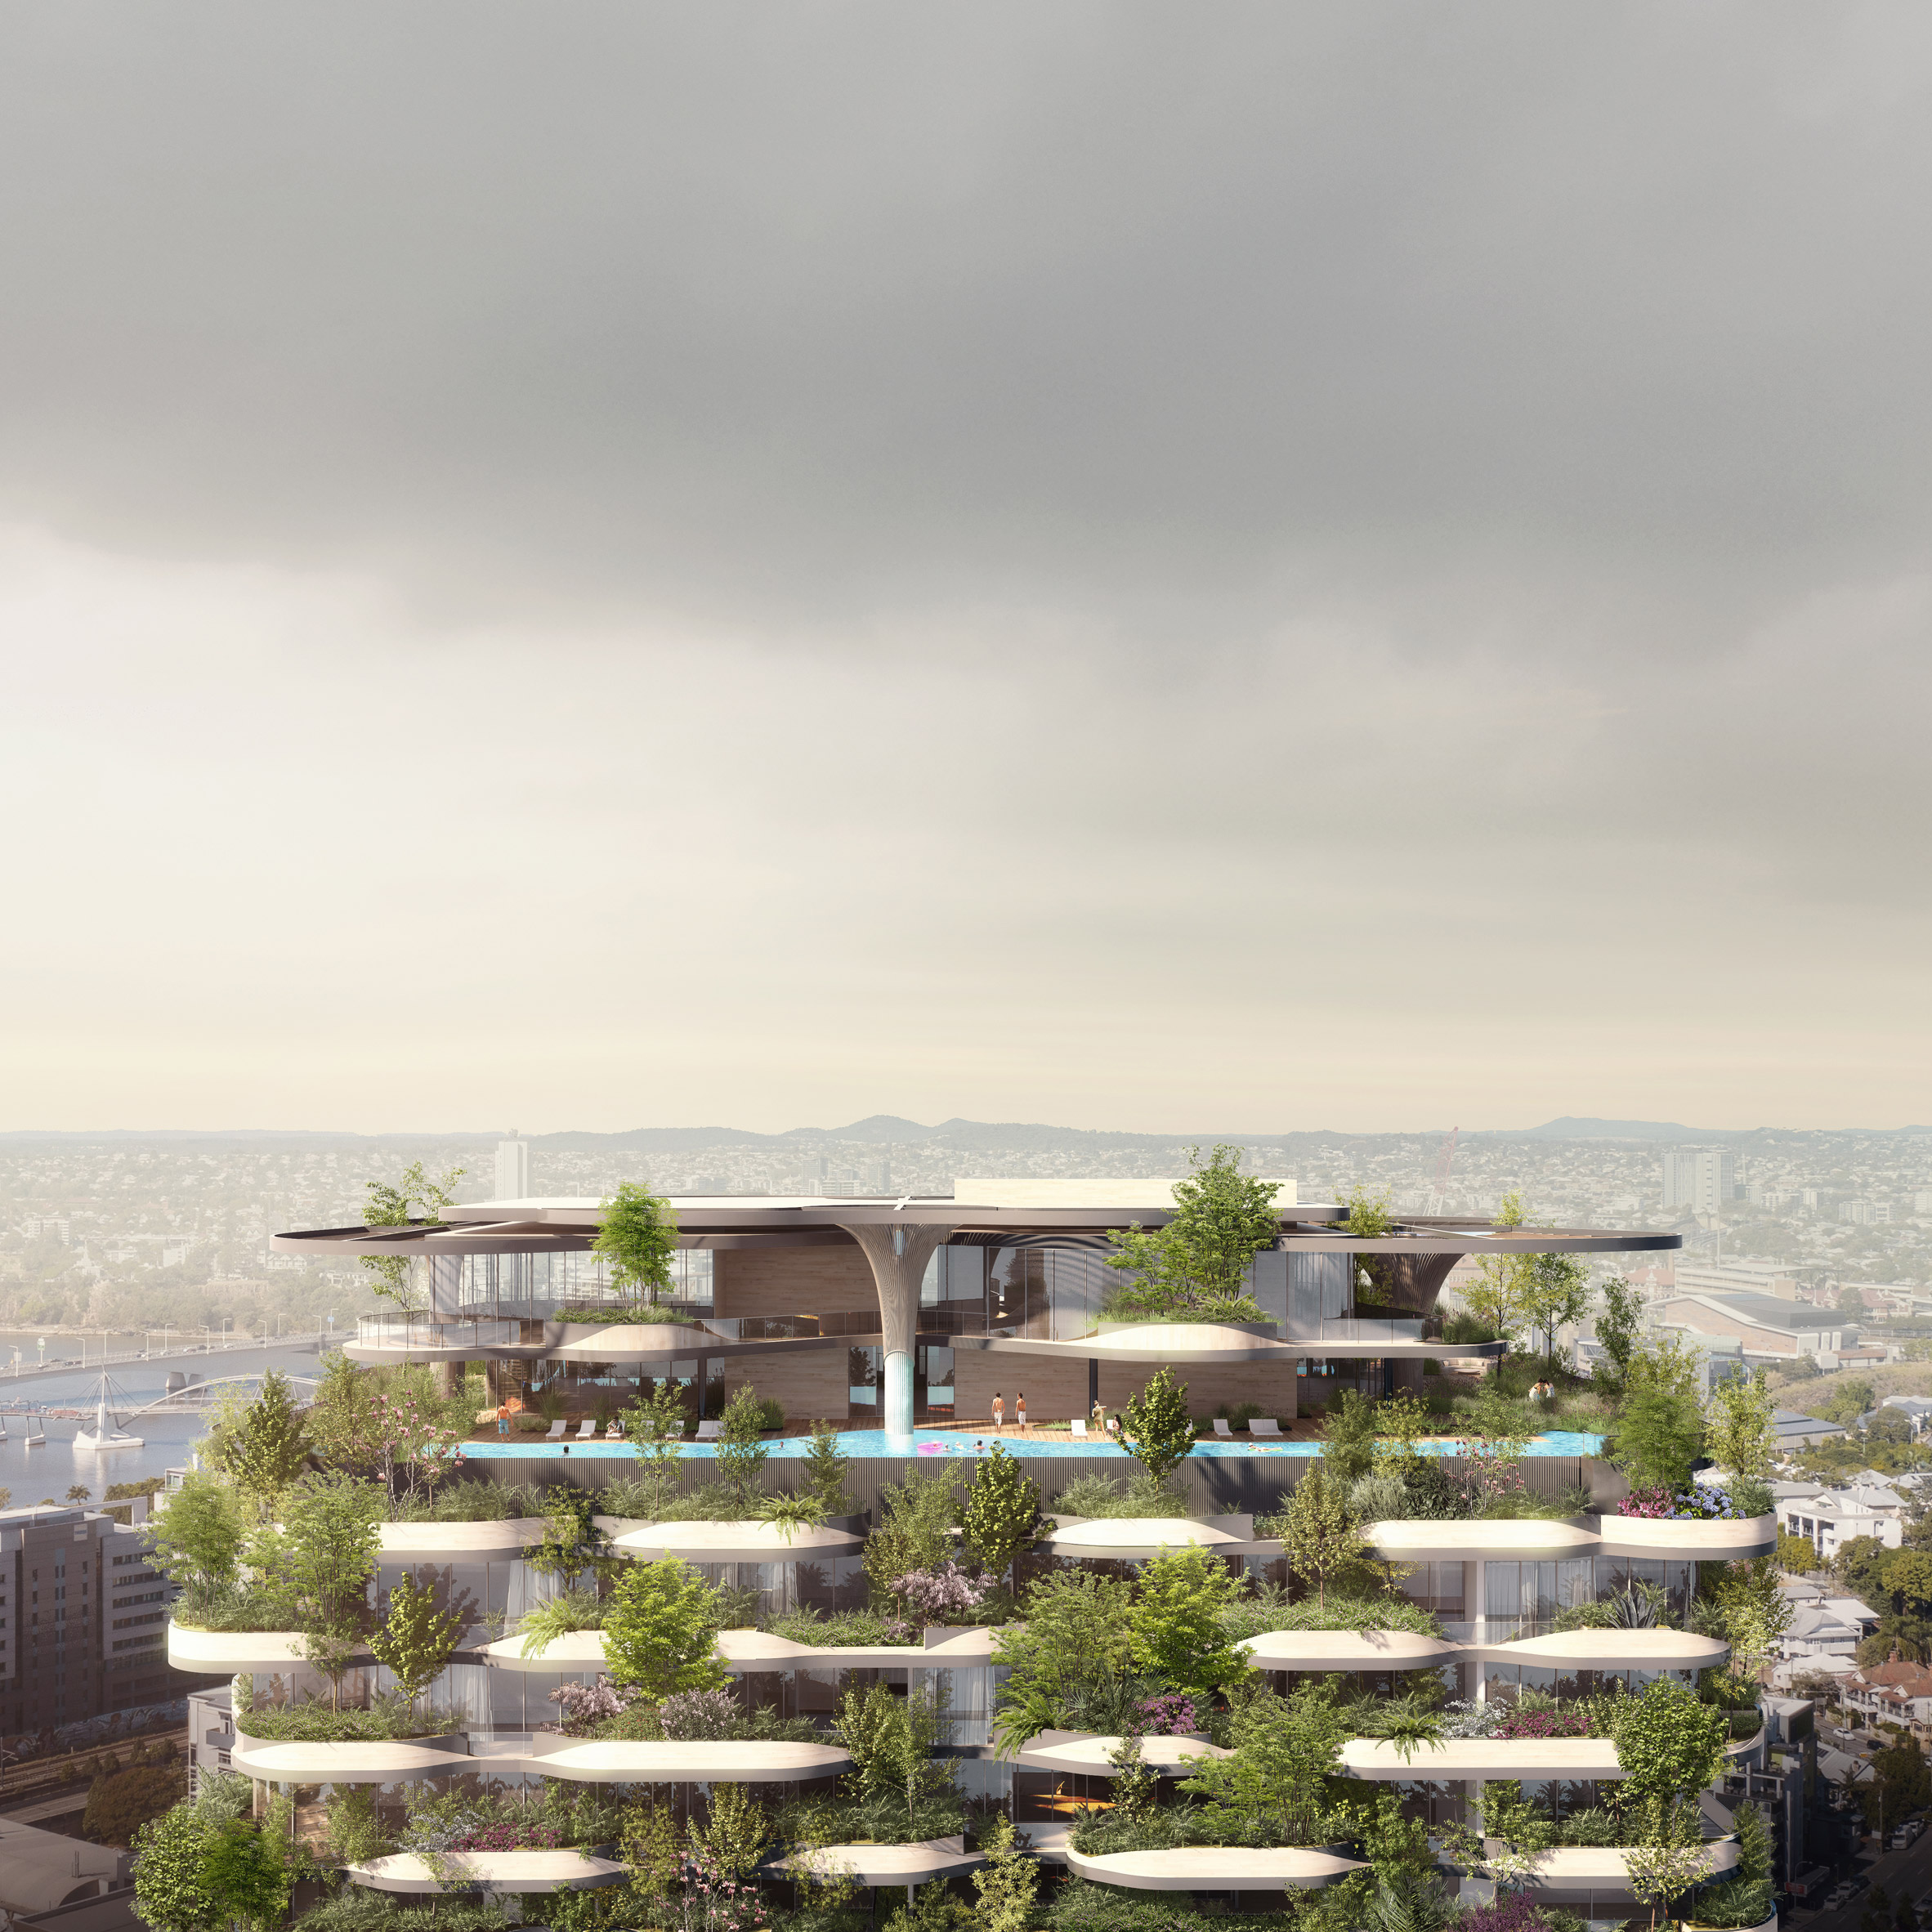 Rooftop garden of Urban Forest high rise apartment building in Brisbane by Koichi Takada Architects